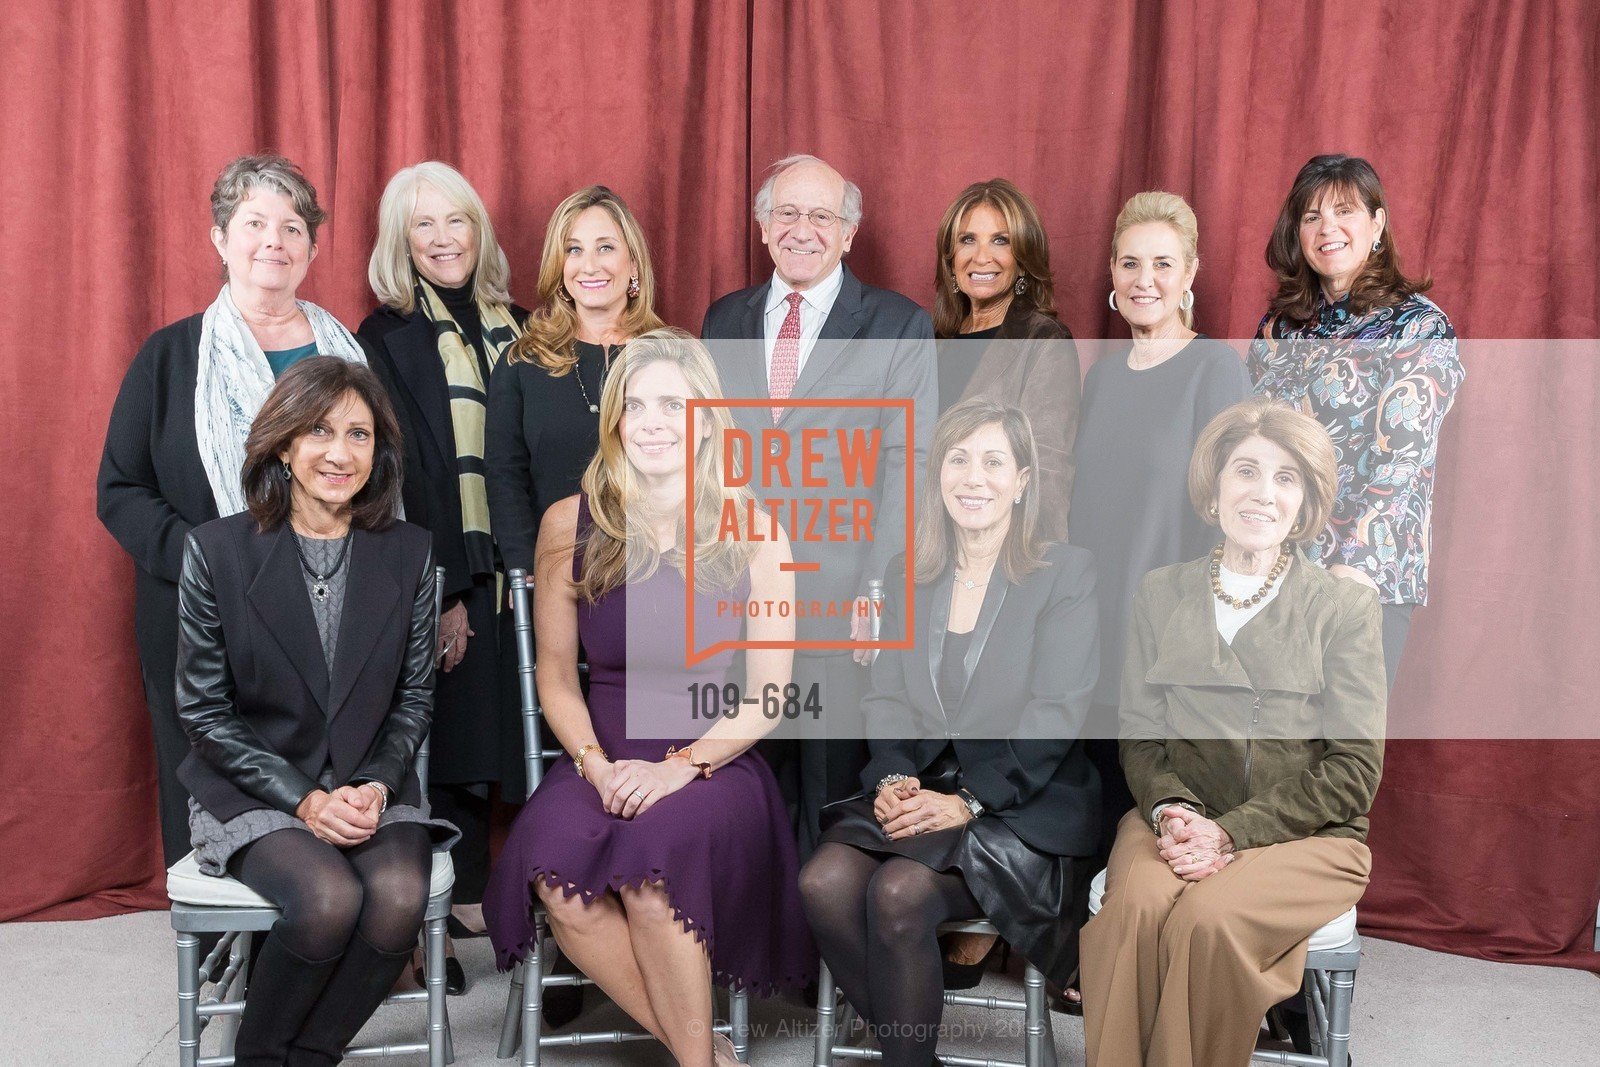 Laurie Kraus Lacob, Deborah Berek, Ann Doerr, Dianne Taube, Suzanne Crandall, Jonathan Berek, Susie Fox, Lisa Schatz, Lisa Goldman, Fran Codispoti, Jane Solomon, Under One Umbrella, Sharon Heights Golf and Country Club, January 13th, 2016,Drew Altizer, Drew Altizer Photography, full-service event agency, private events, San Francisco photographer, photographer California